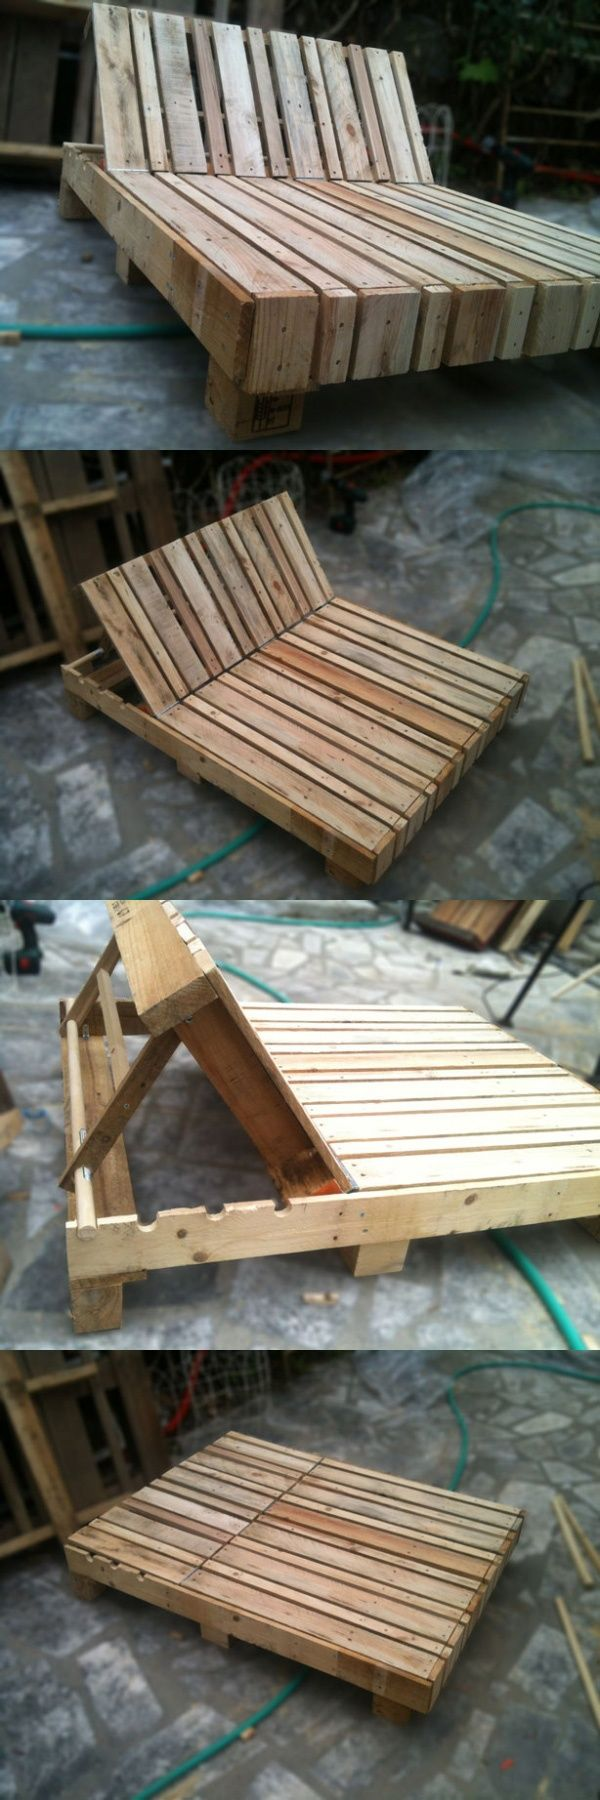 Pallet Lounge Chair - Would be perfect for the back deck!